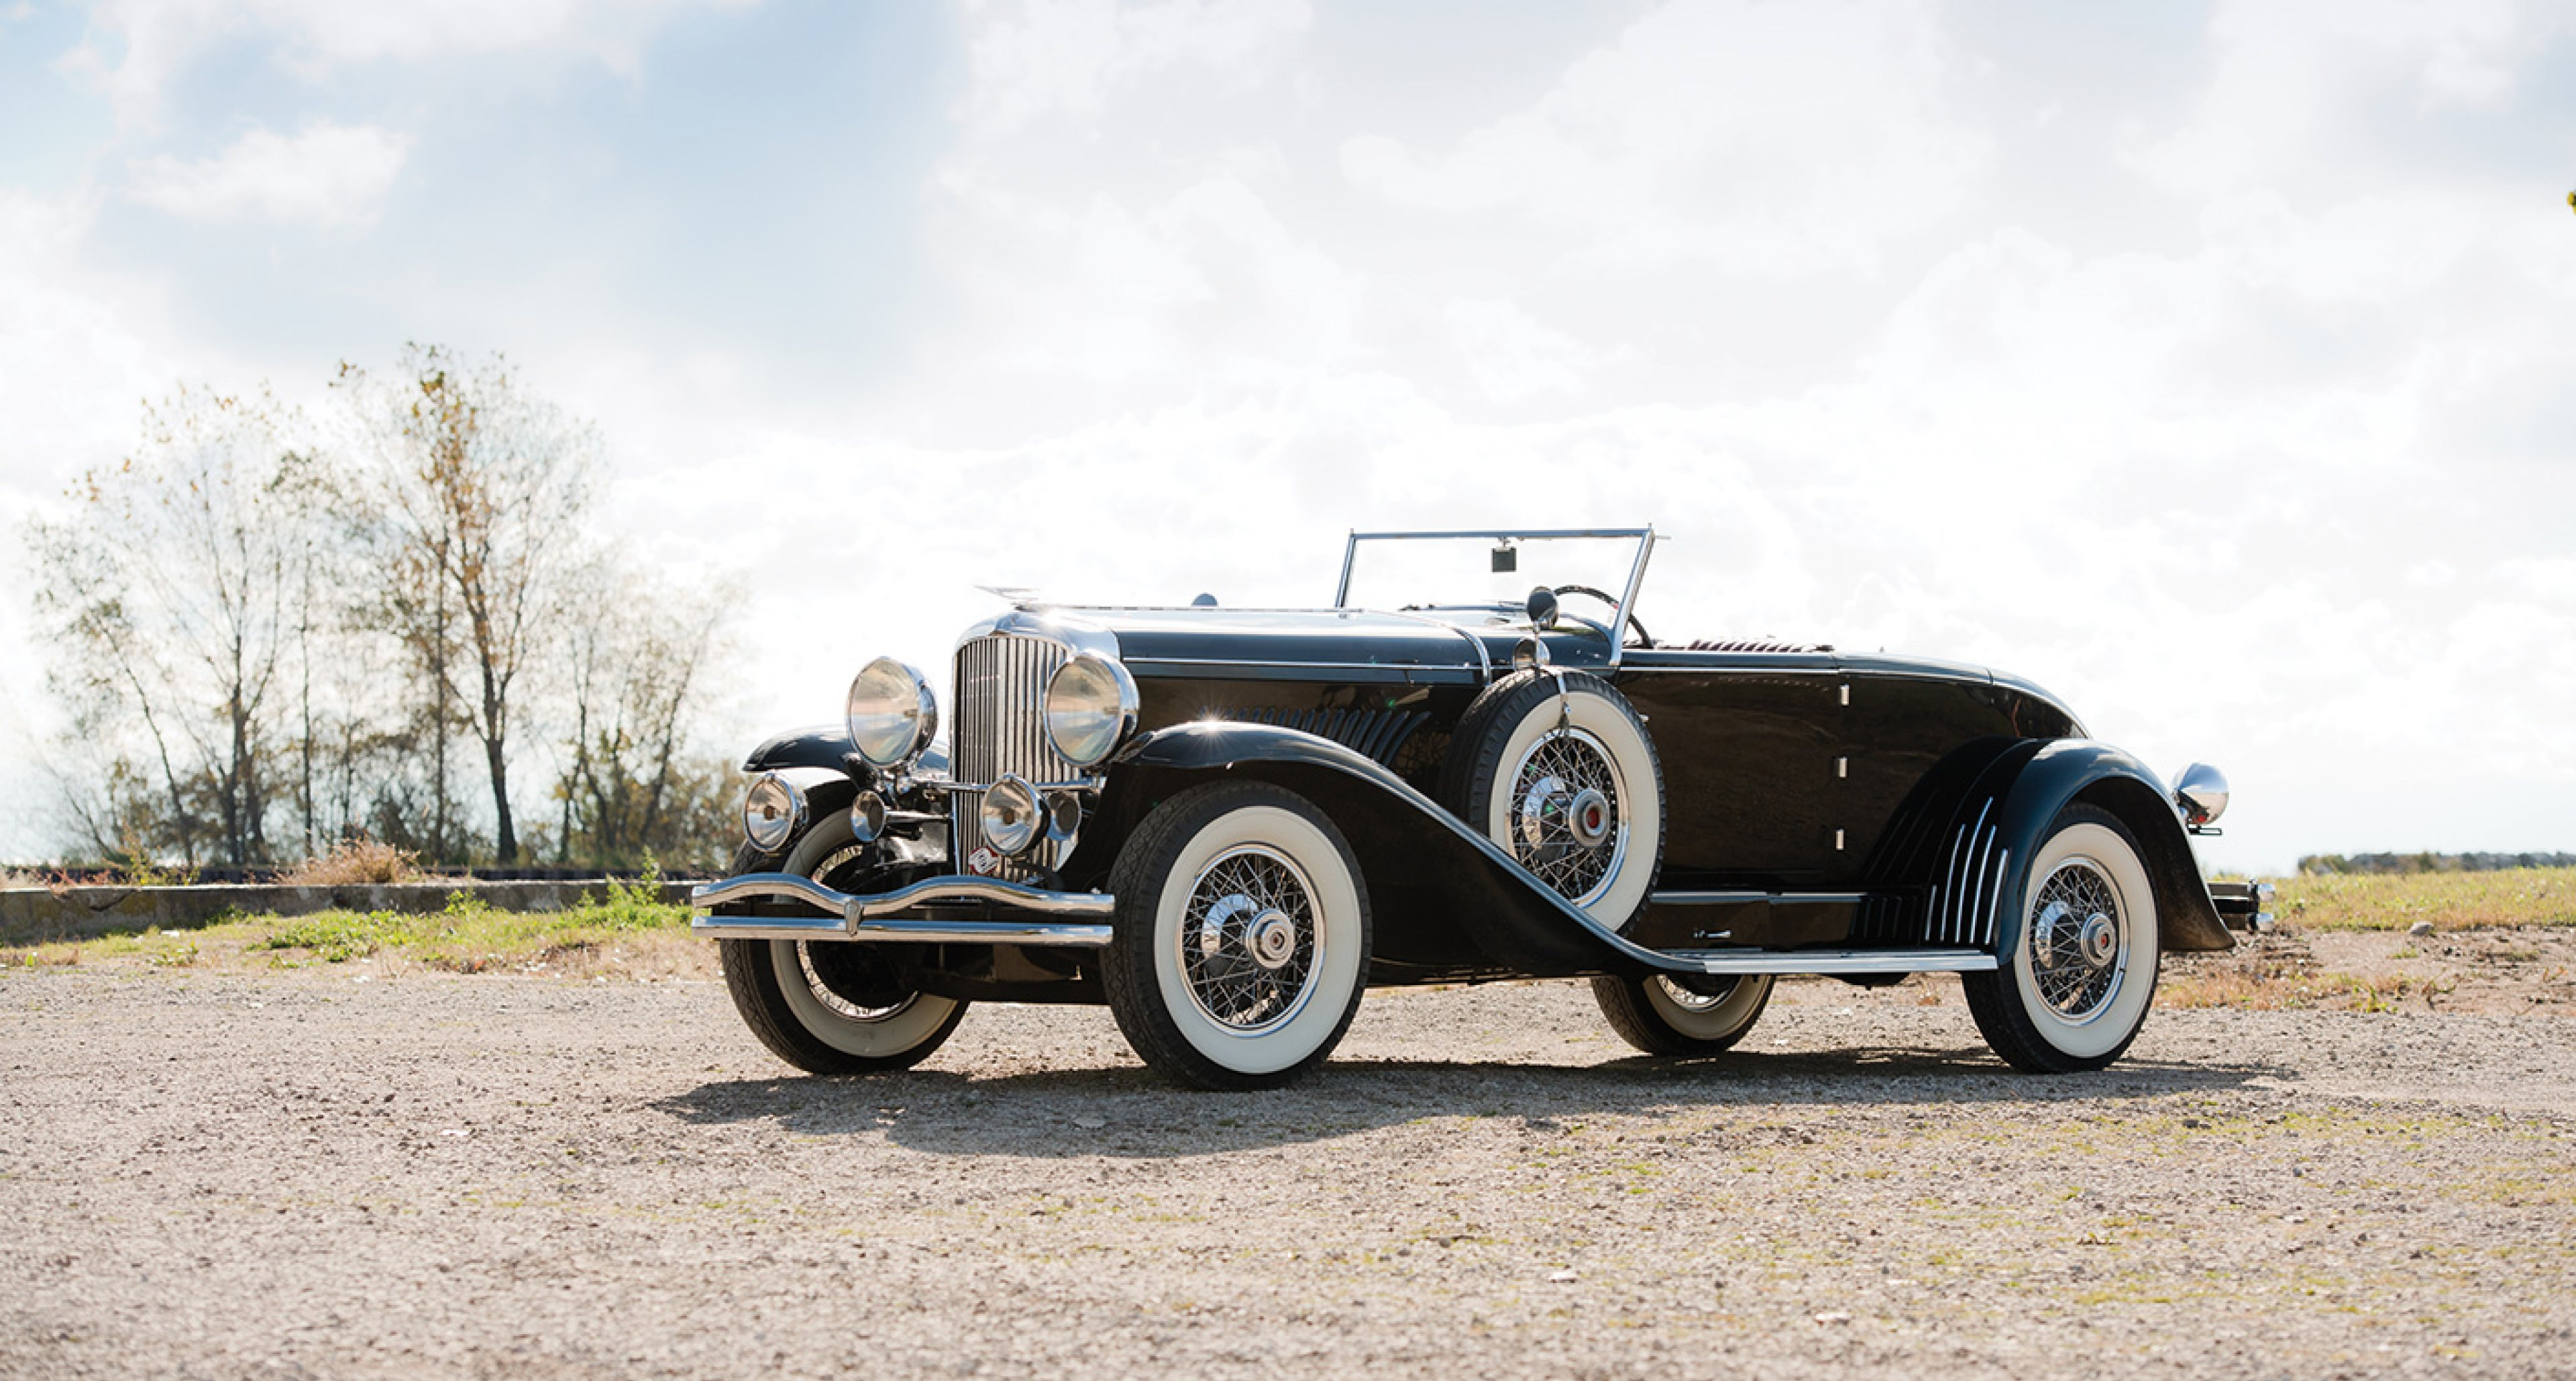 1930 Duesenberg Model J 'Disappearing Top' Convertible Coupe sold by RM for $2,200,000